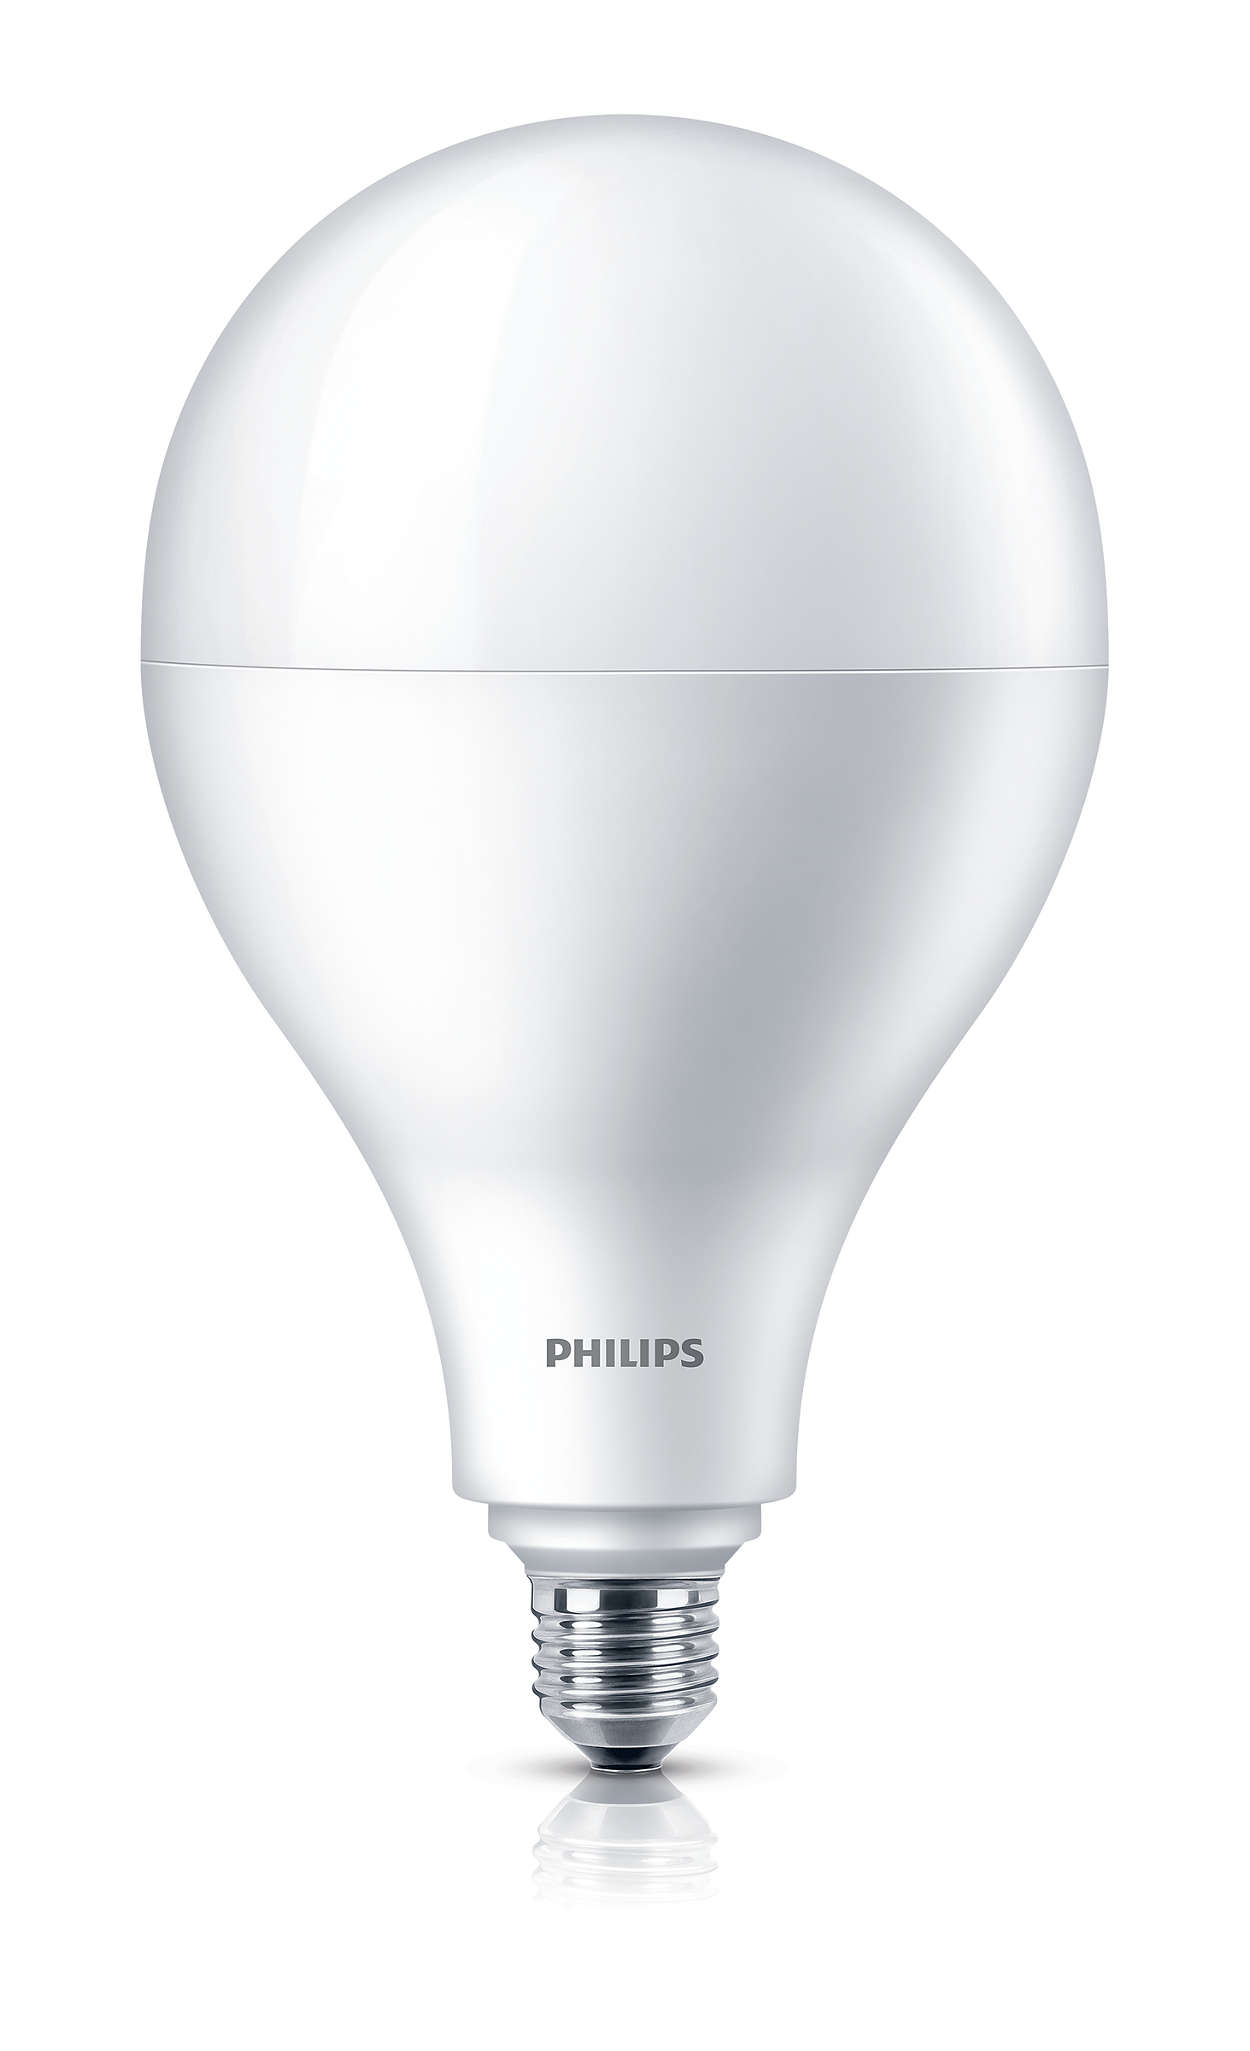 on that bulb the imore let goes lights major for mere smart have best led zigbee is hub amazon to light here you caveat cost connected a don need low cree bulbs t home but can price fool your